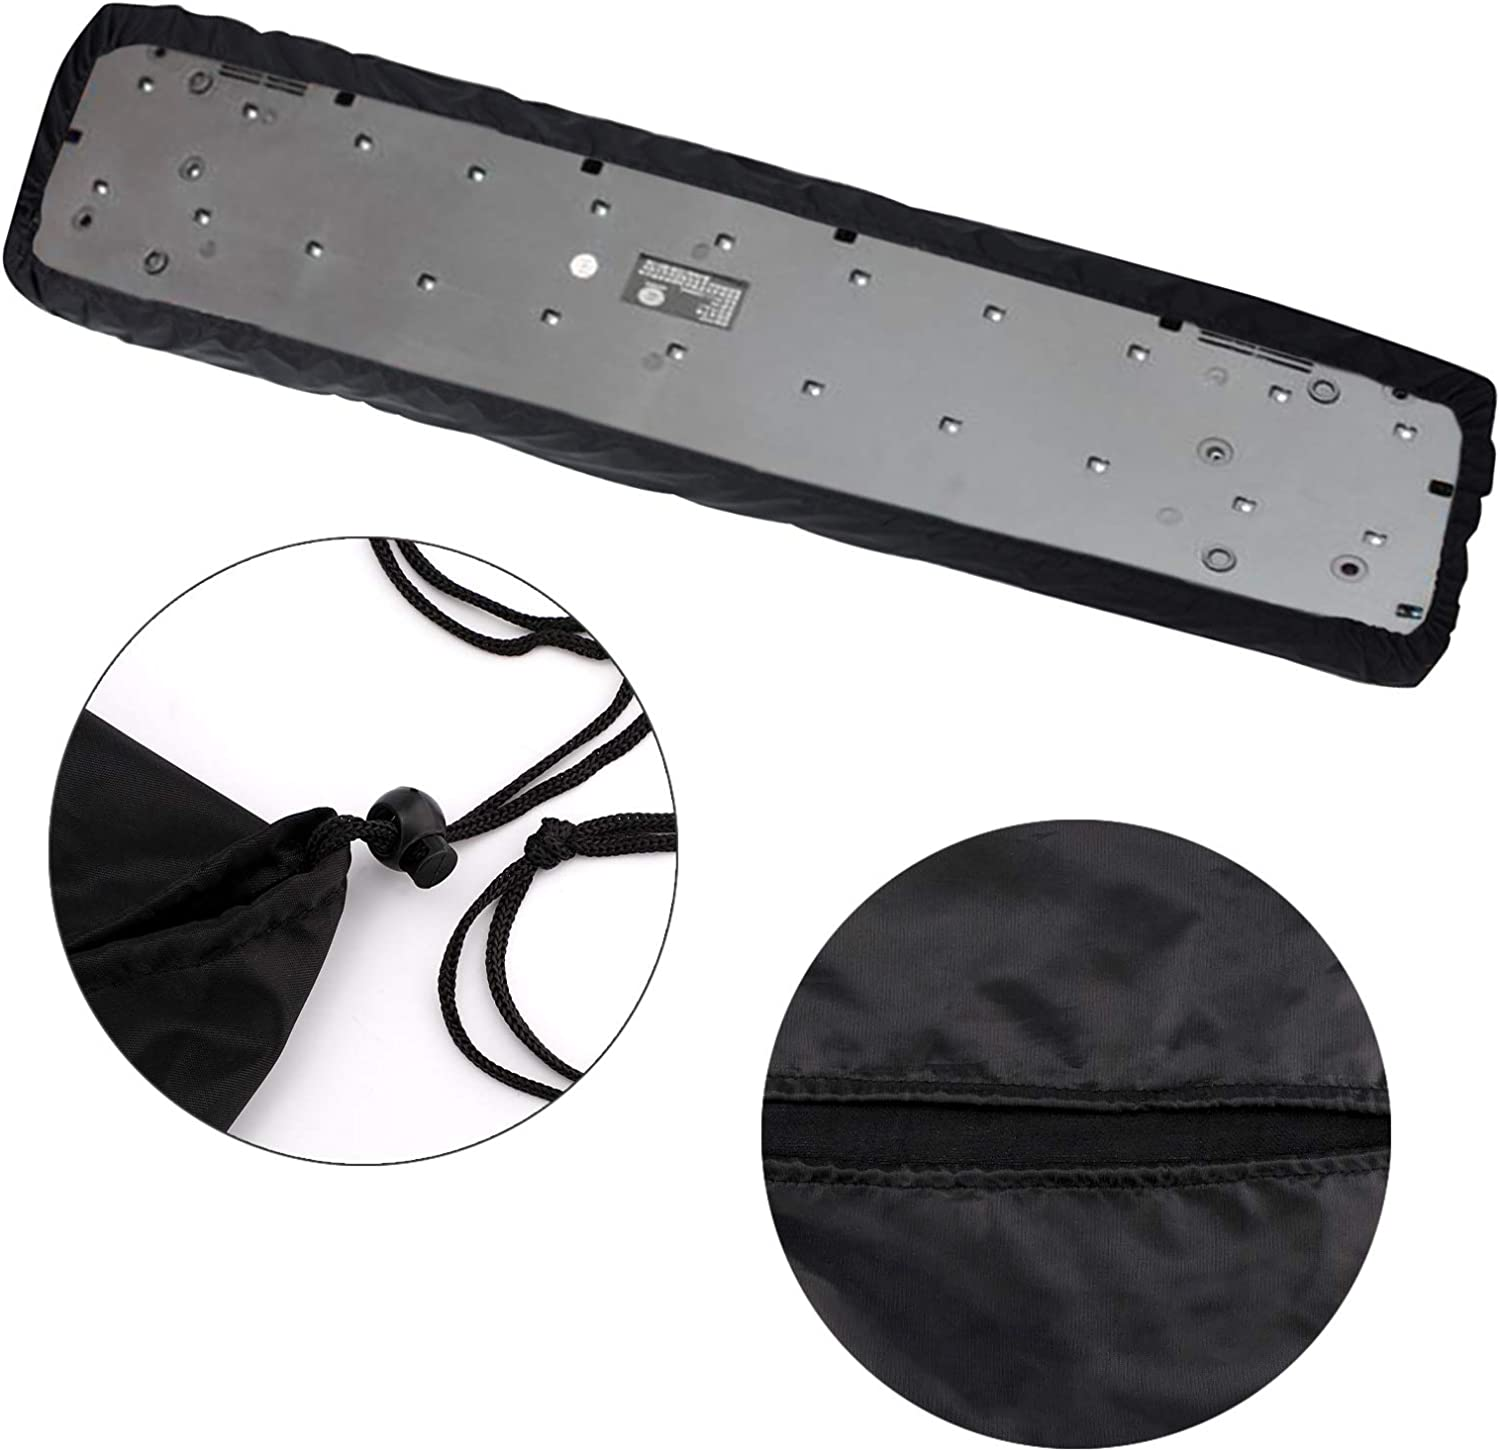 LUTER Piano Keyboard Dust Cover for 61 Keys Stretchable Protective Keyboard Cover for Electric and Digital Piano with Elastic Cord Locking Clasp